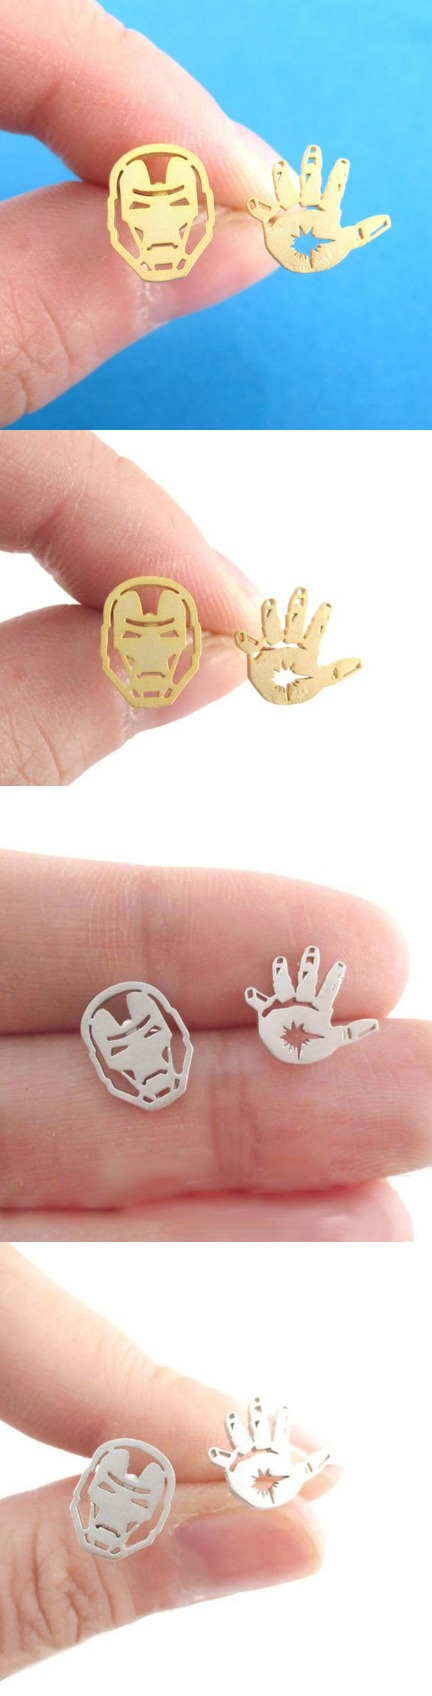 IRON MAN MASK AND GLOVE SHAPED STUD EARRINGS! Click The Image To Buy It Now or Tag Someone You Want To Buy This For. #ironman